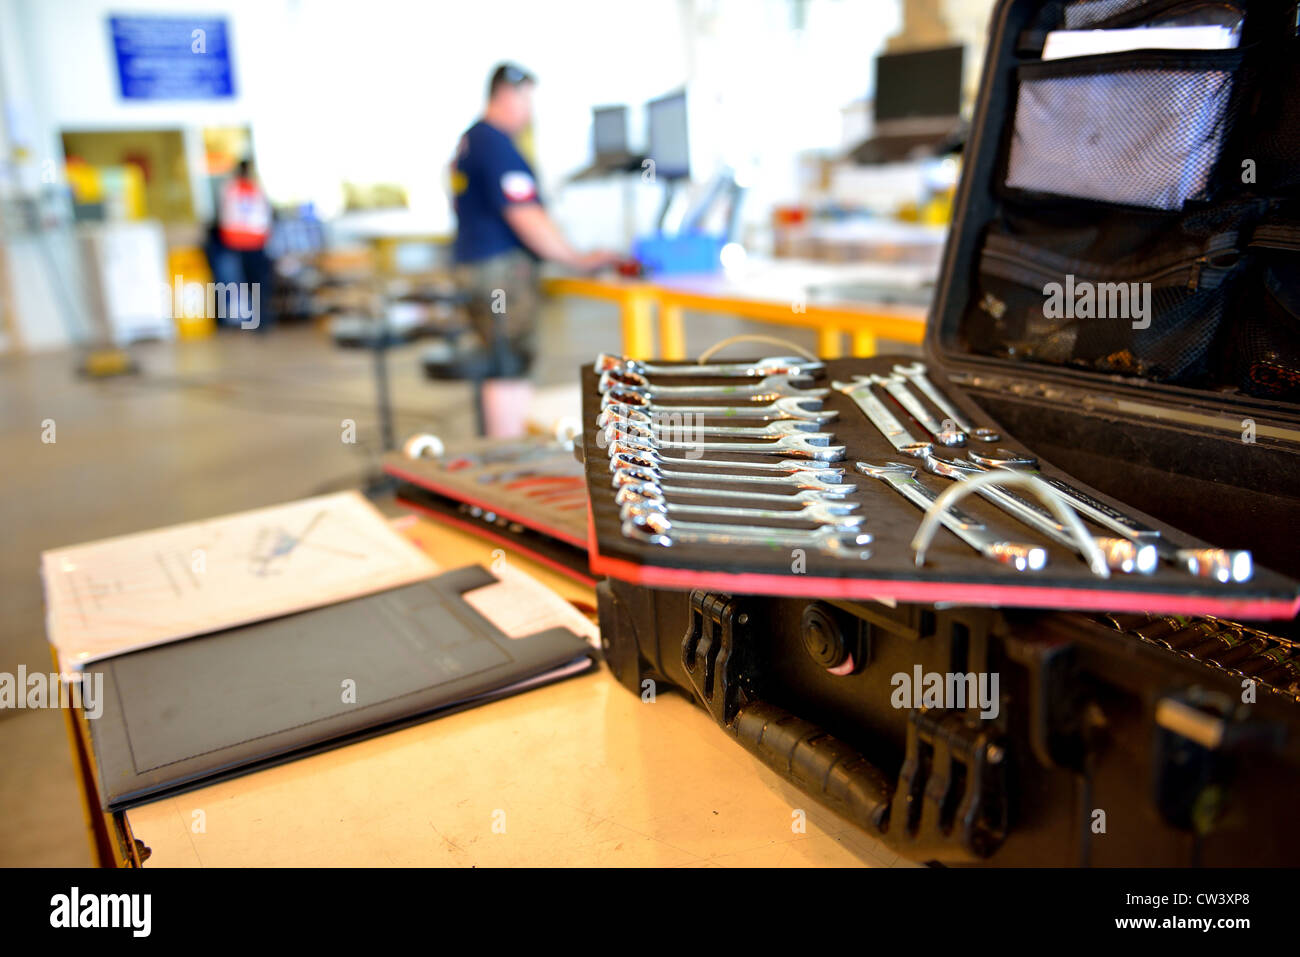 The mechanic tool box is on the table. - Stock Image